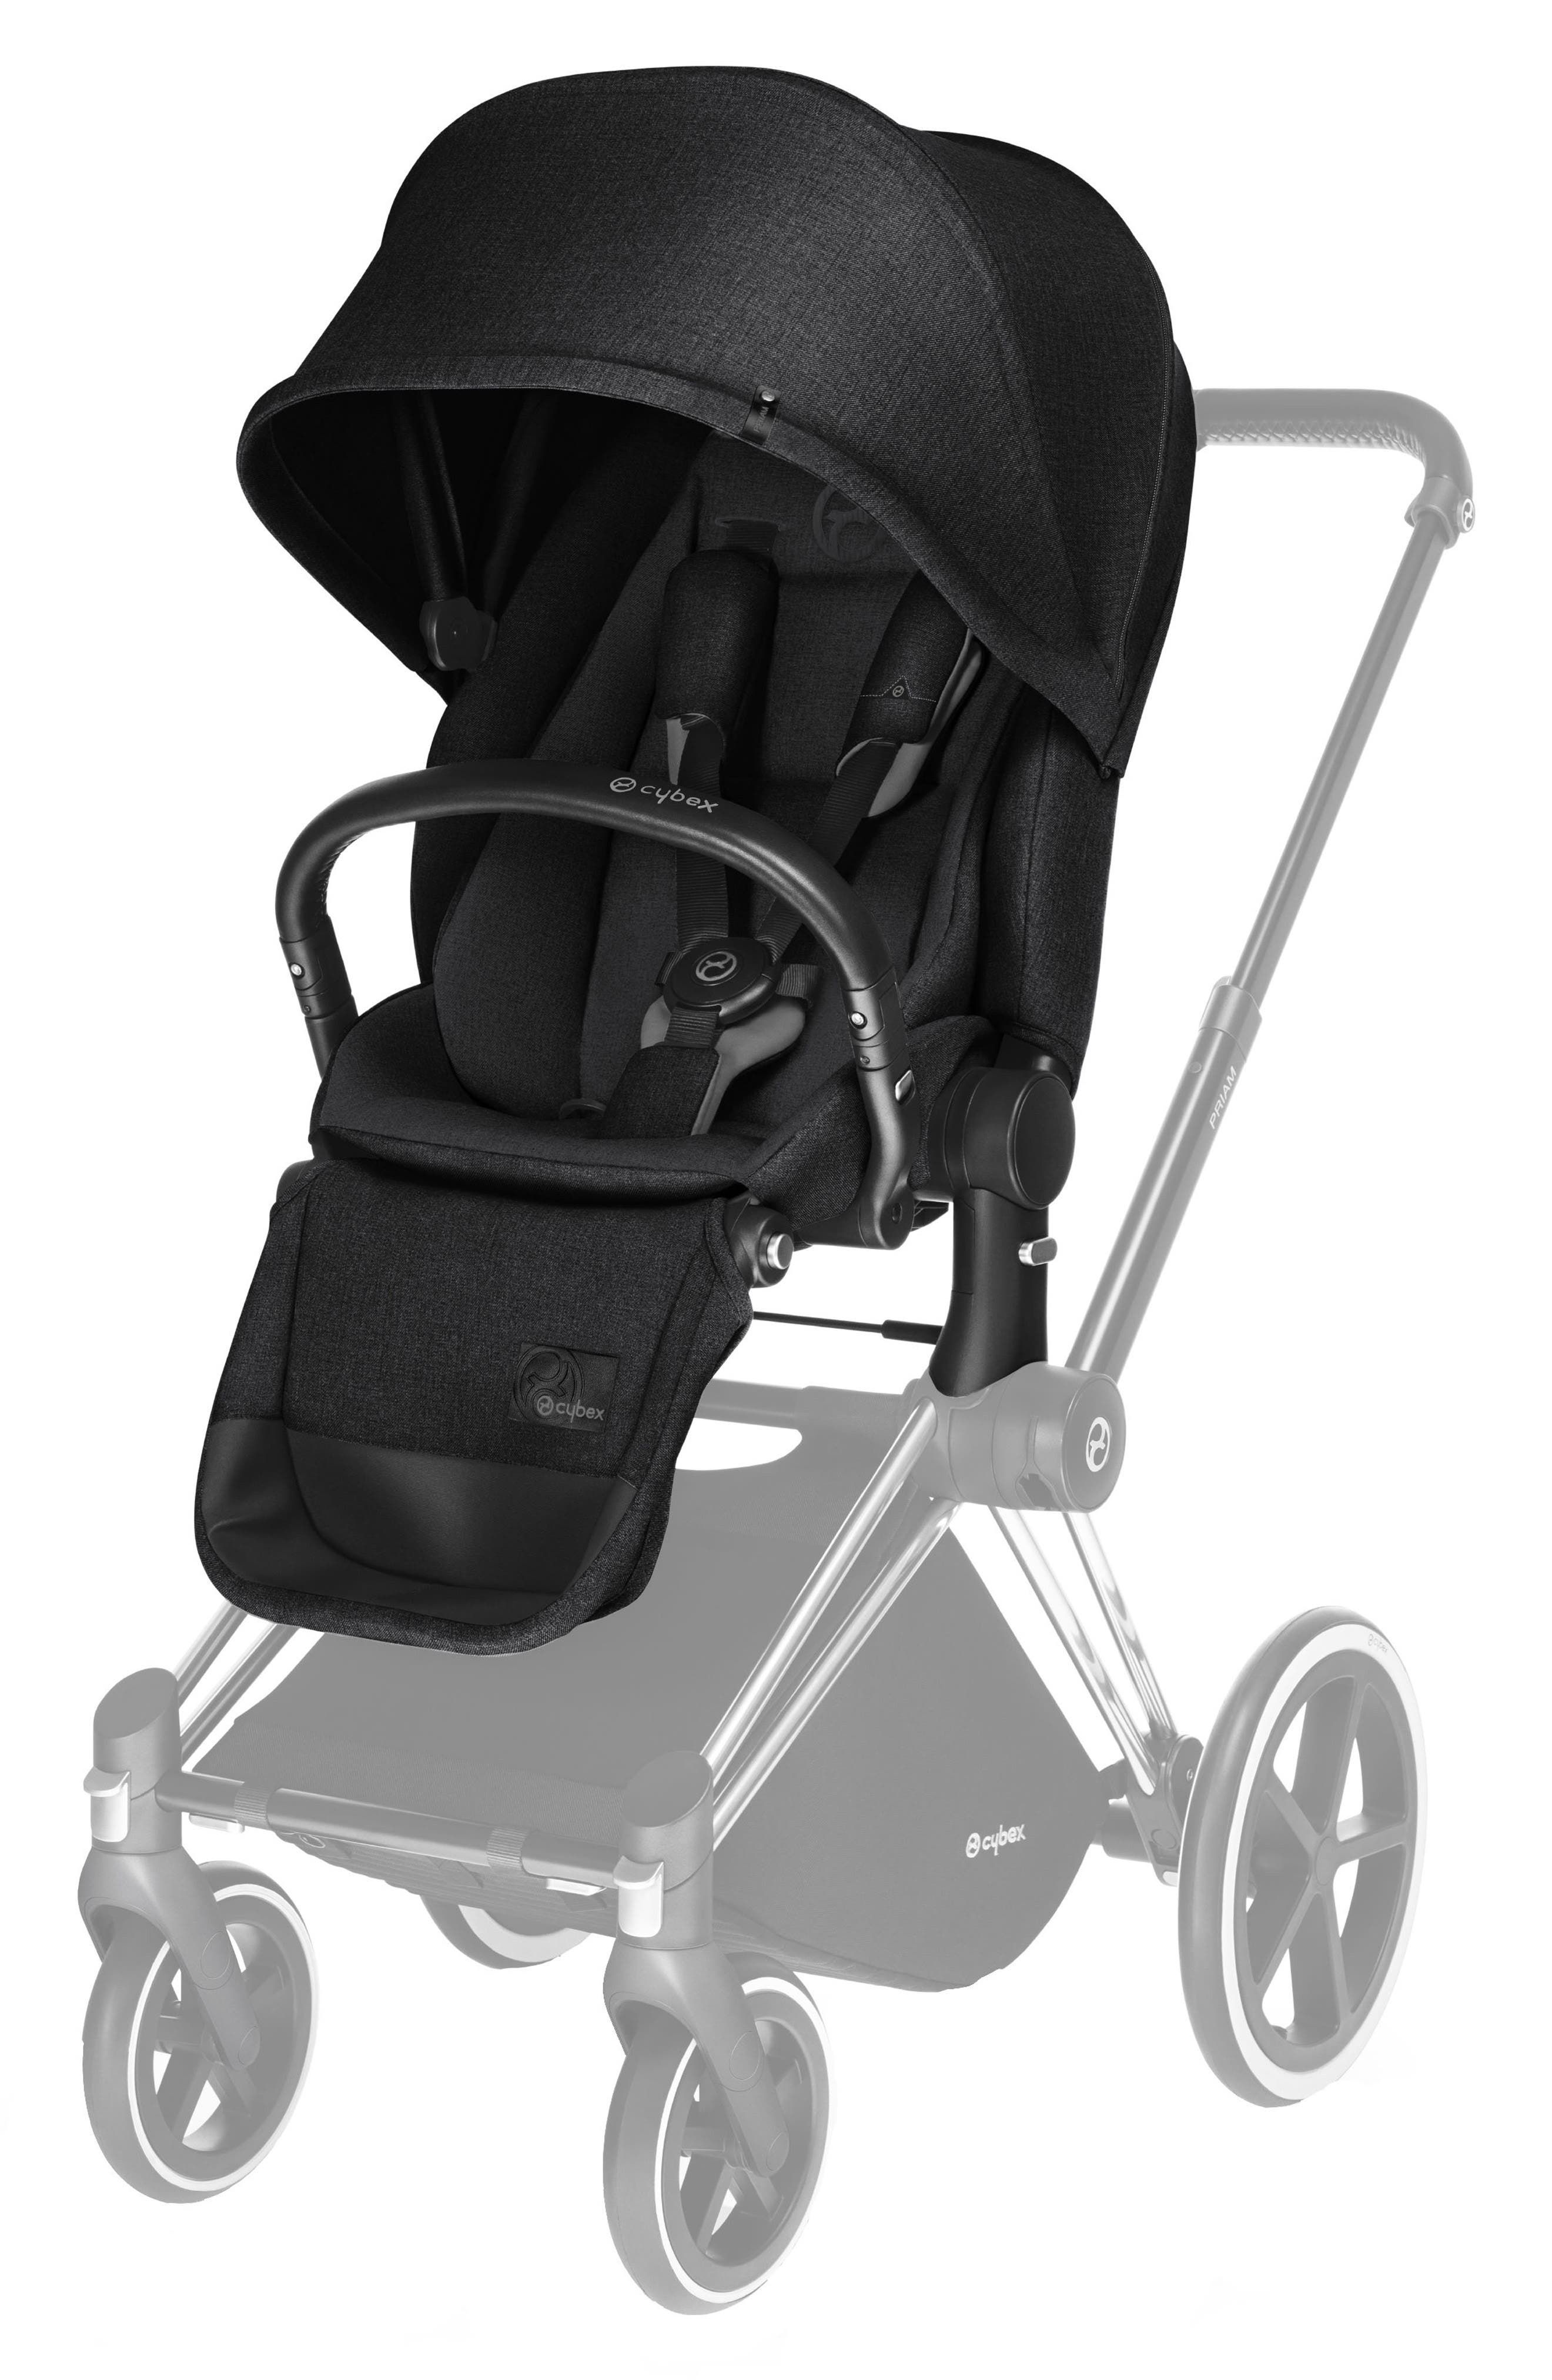 Alternate Image 1 Selected - CYBEX Priam Lux Seat for Priam Modular Stroller